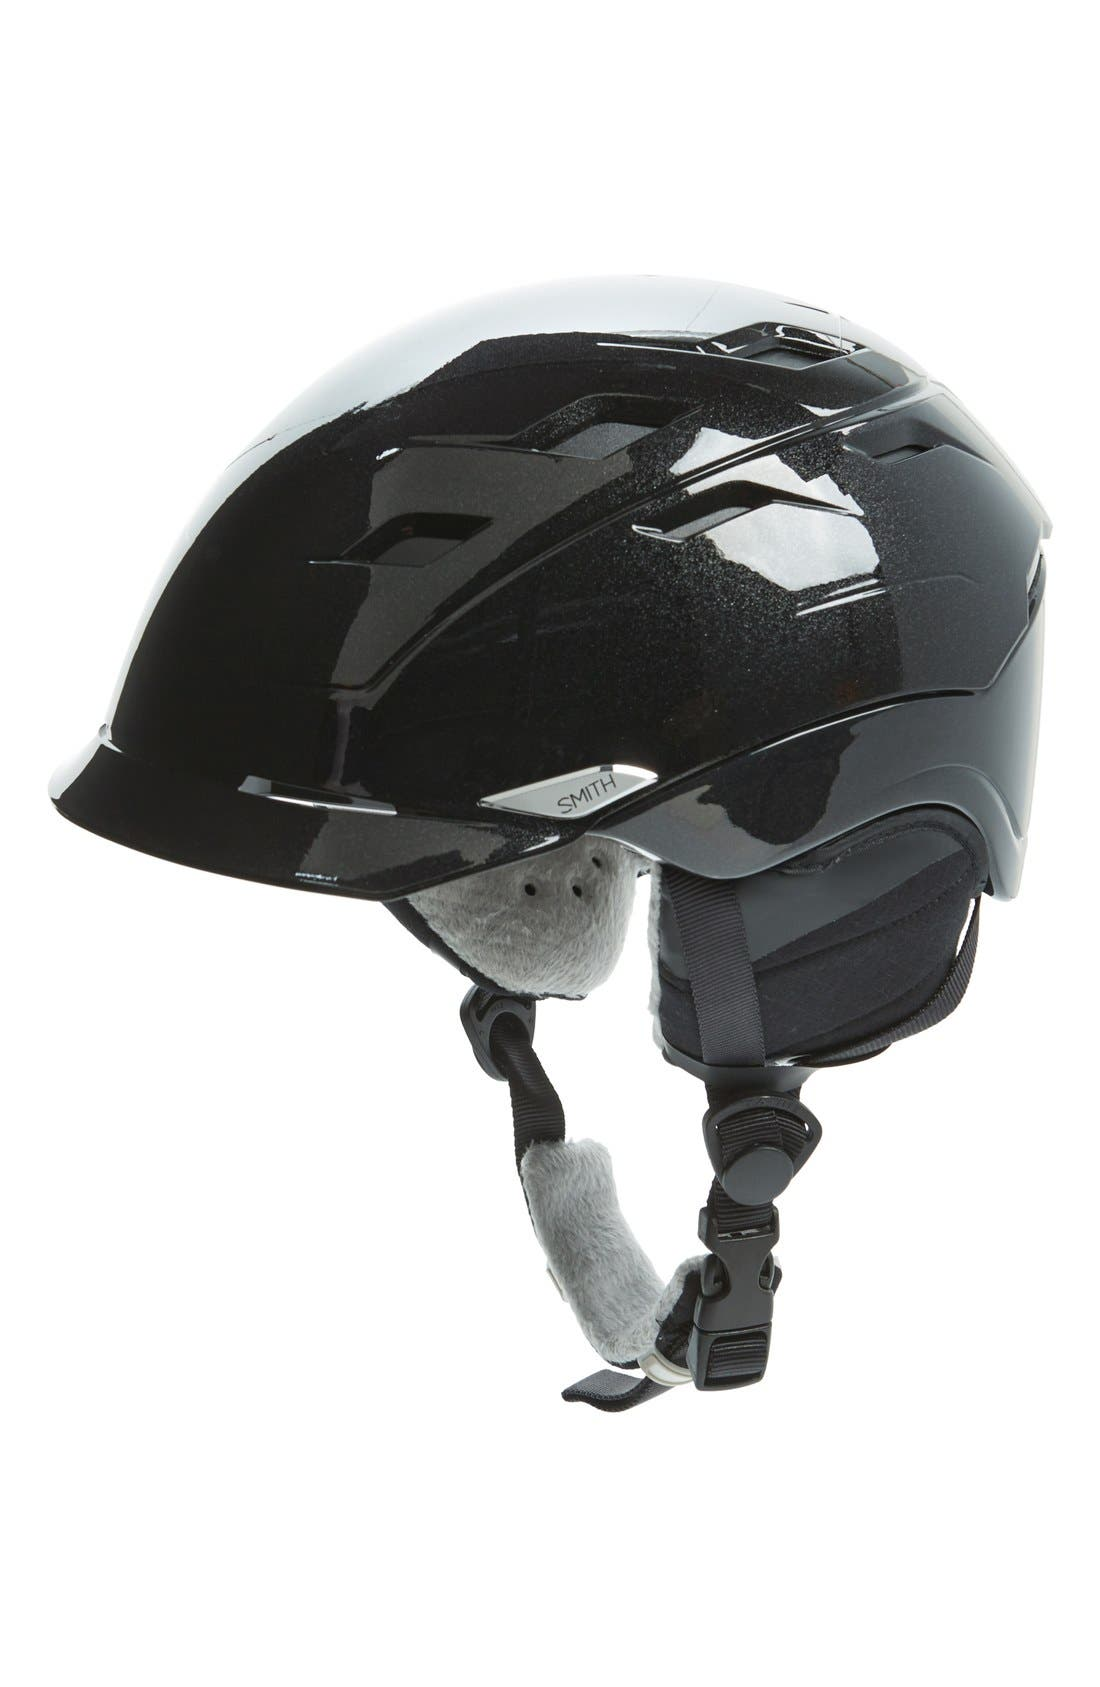 VALENCE WITH MIPS SNOW HELMET - BLACK